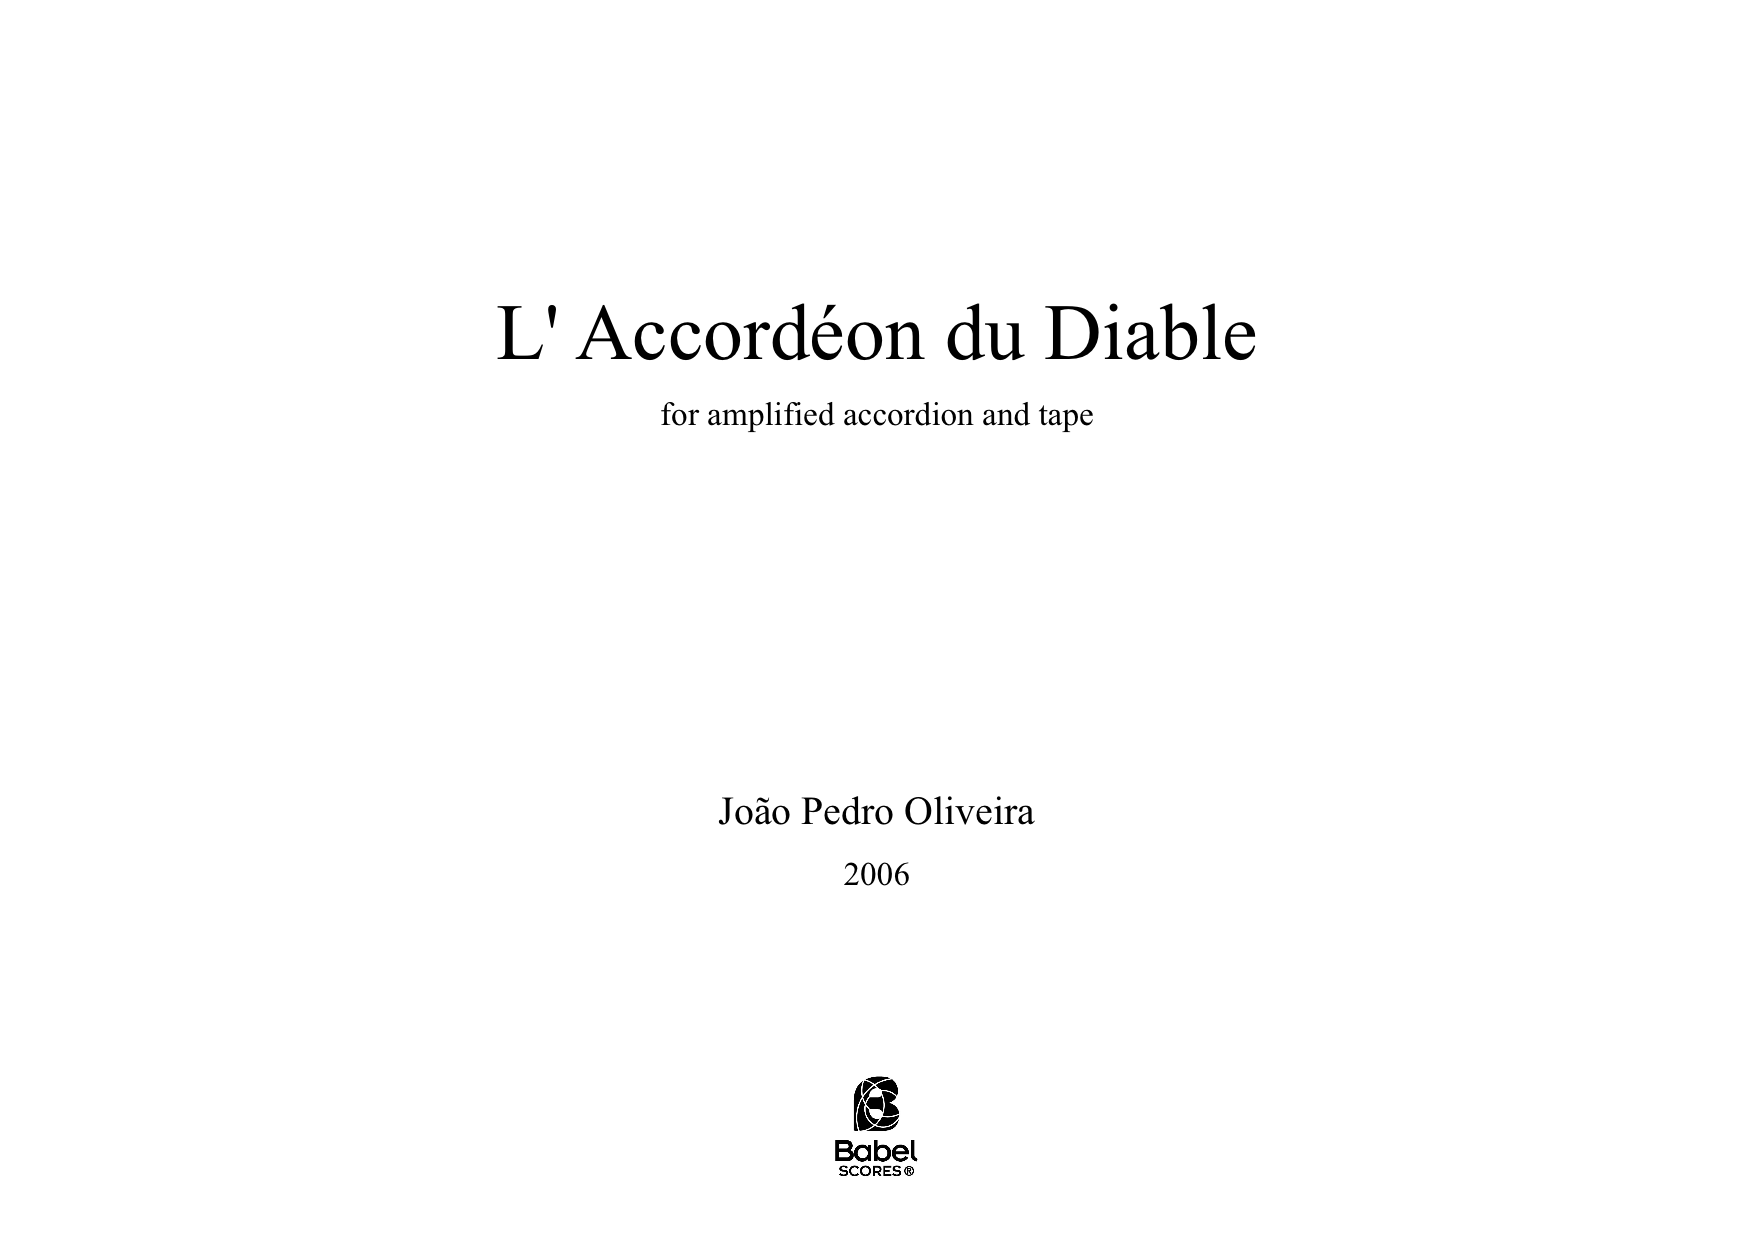 L Accordion du Diable A4 z 3 1 473